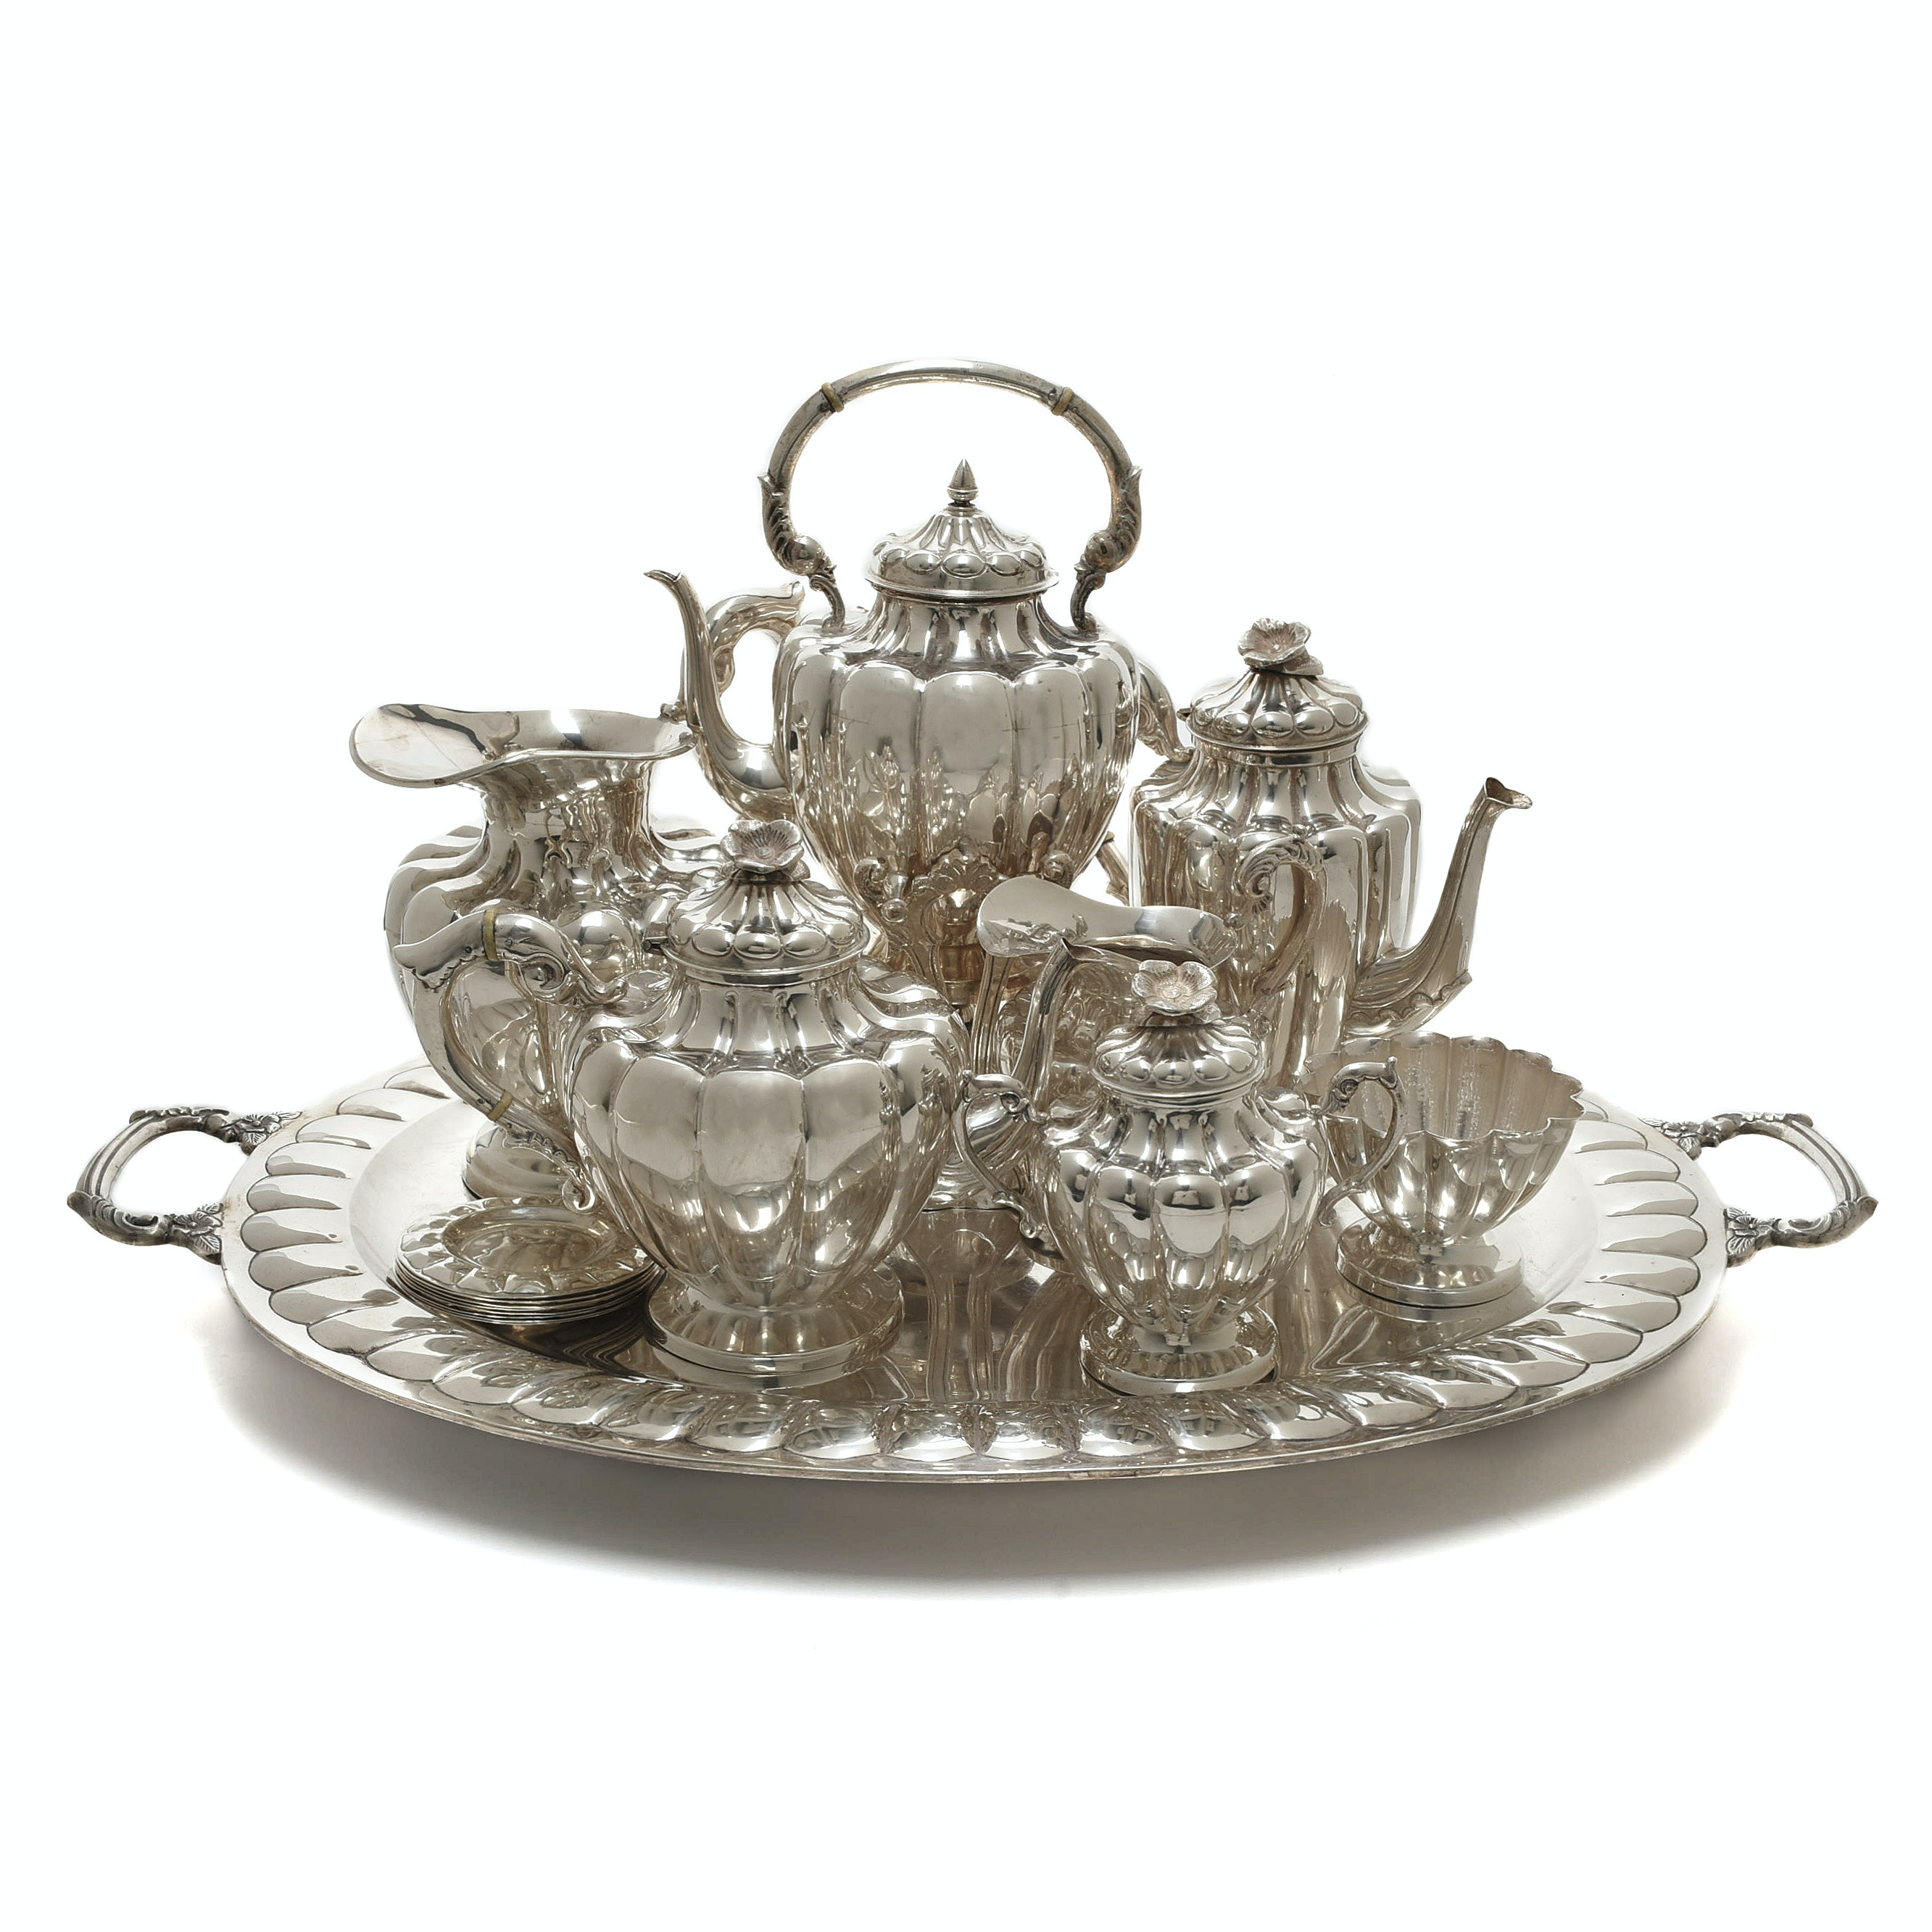 Vintage L. Maciel Mexican Sterling Silver Tea Service and Tray